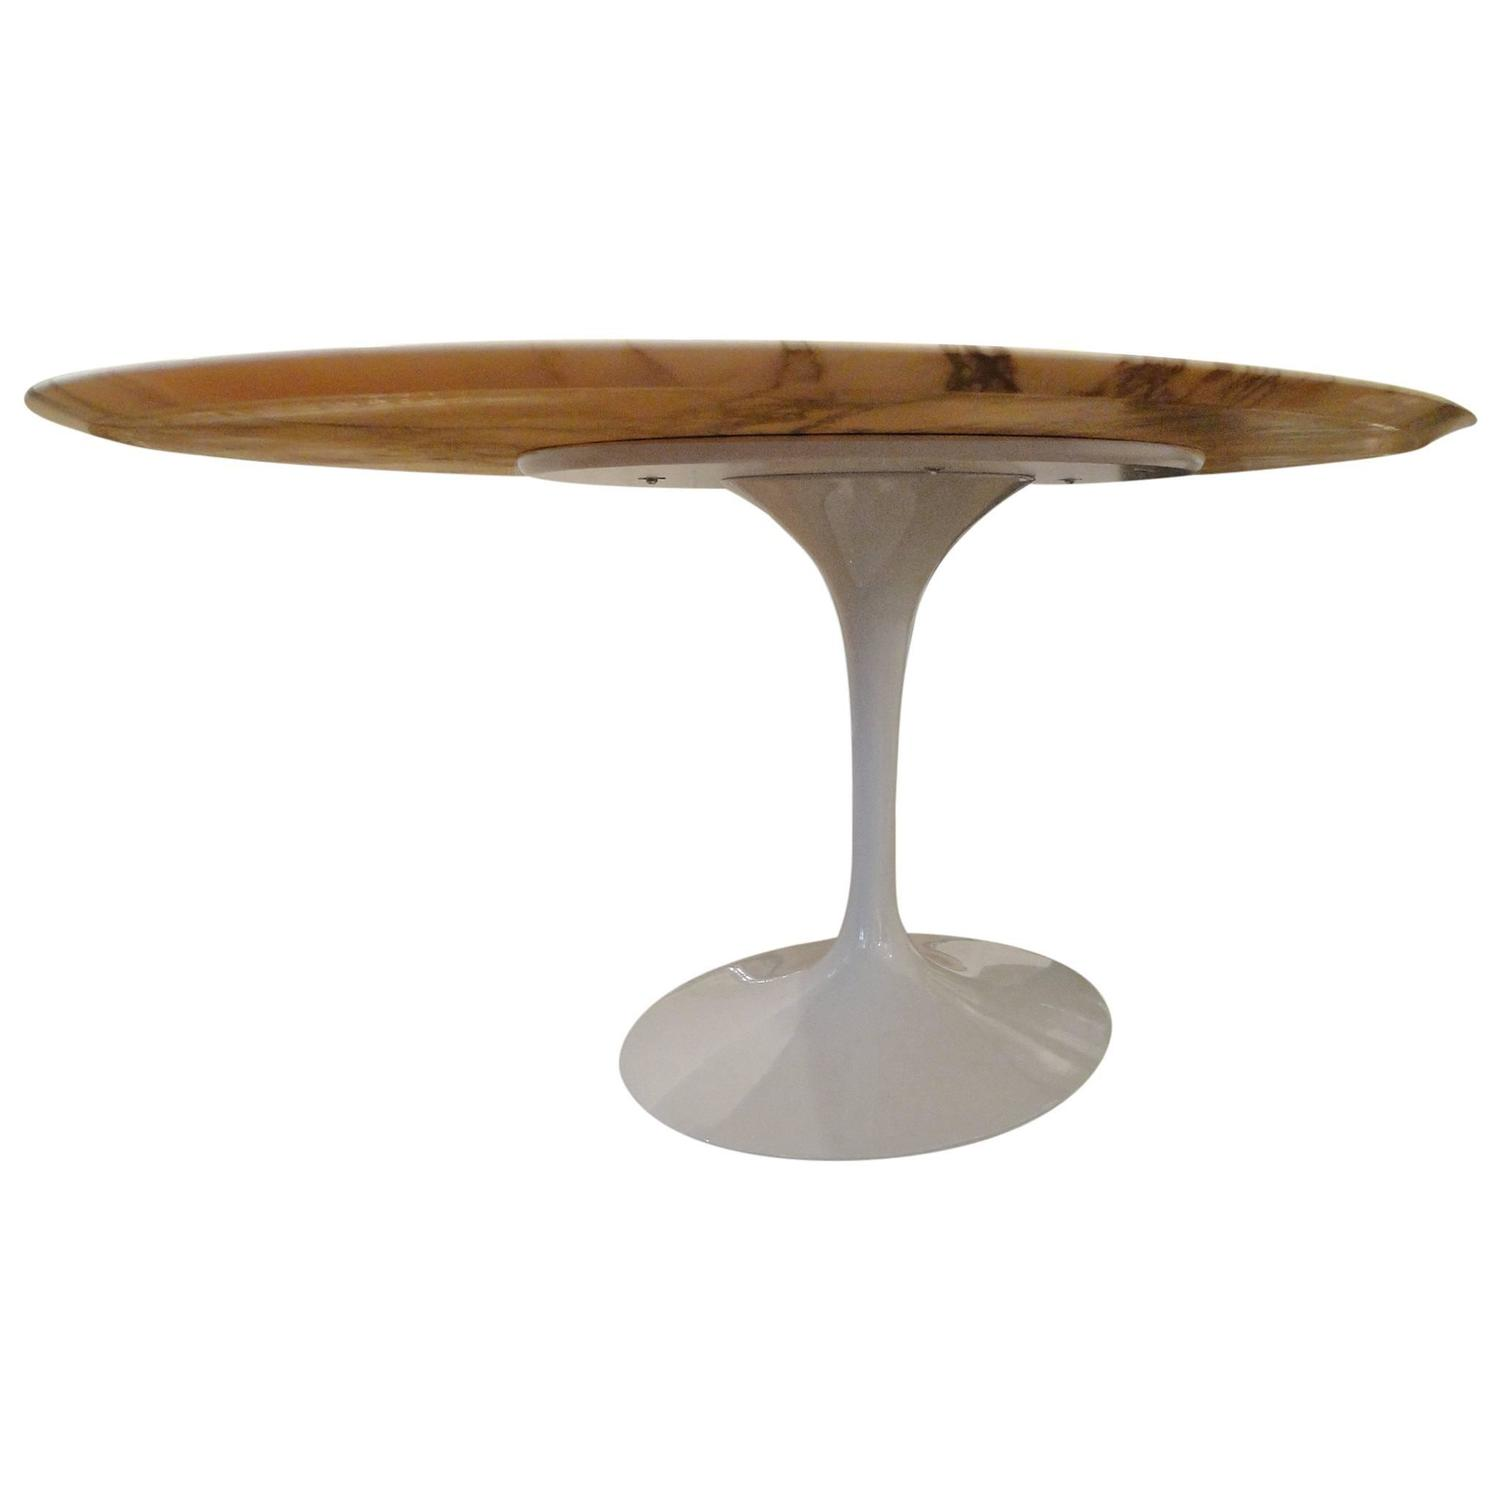 Eero saarinen marble calacatta top oval dining table for Oval dining table